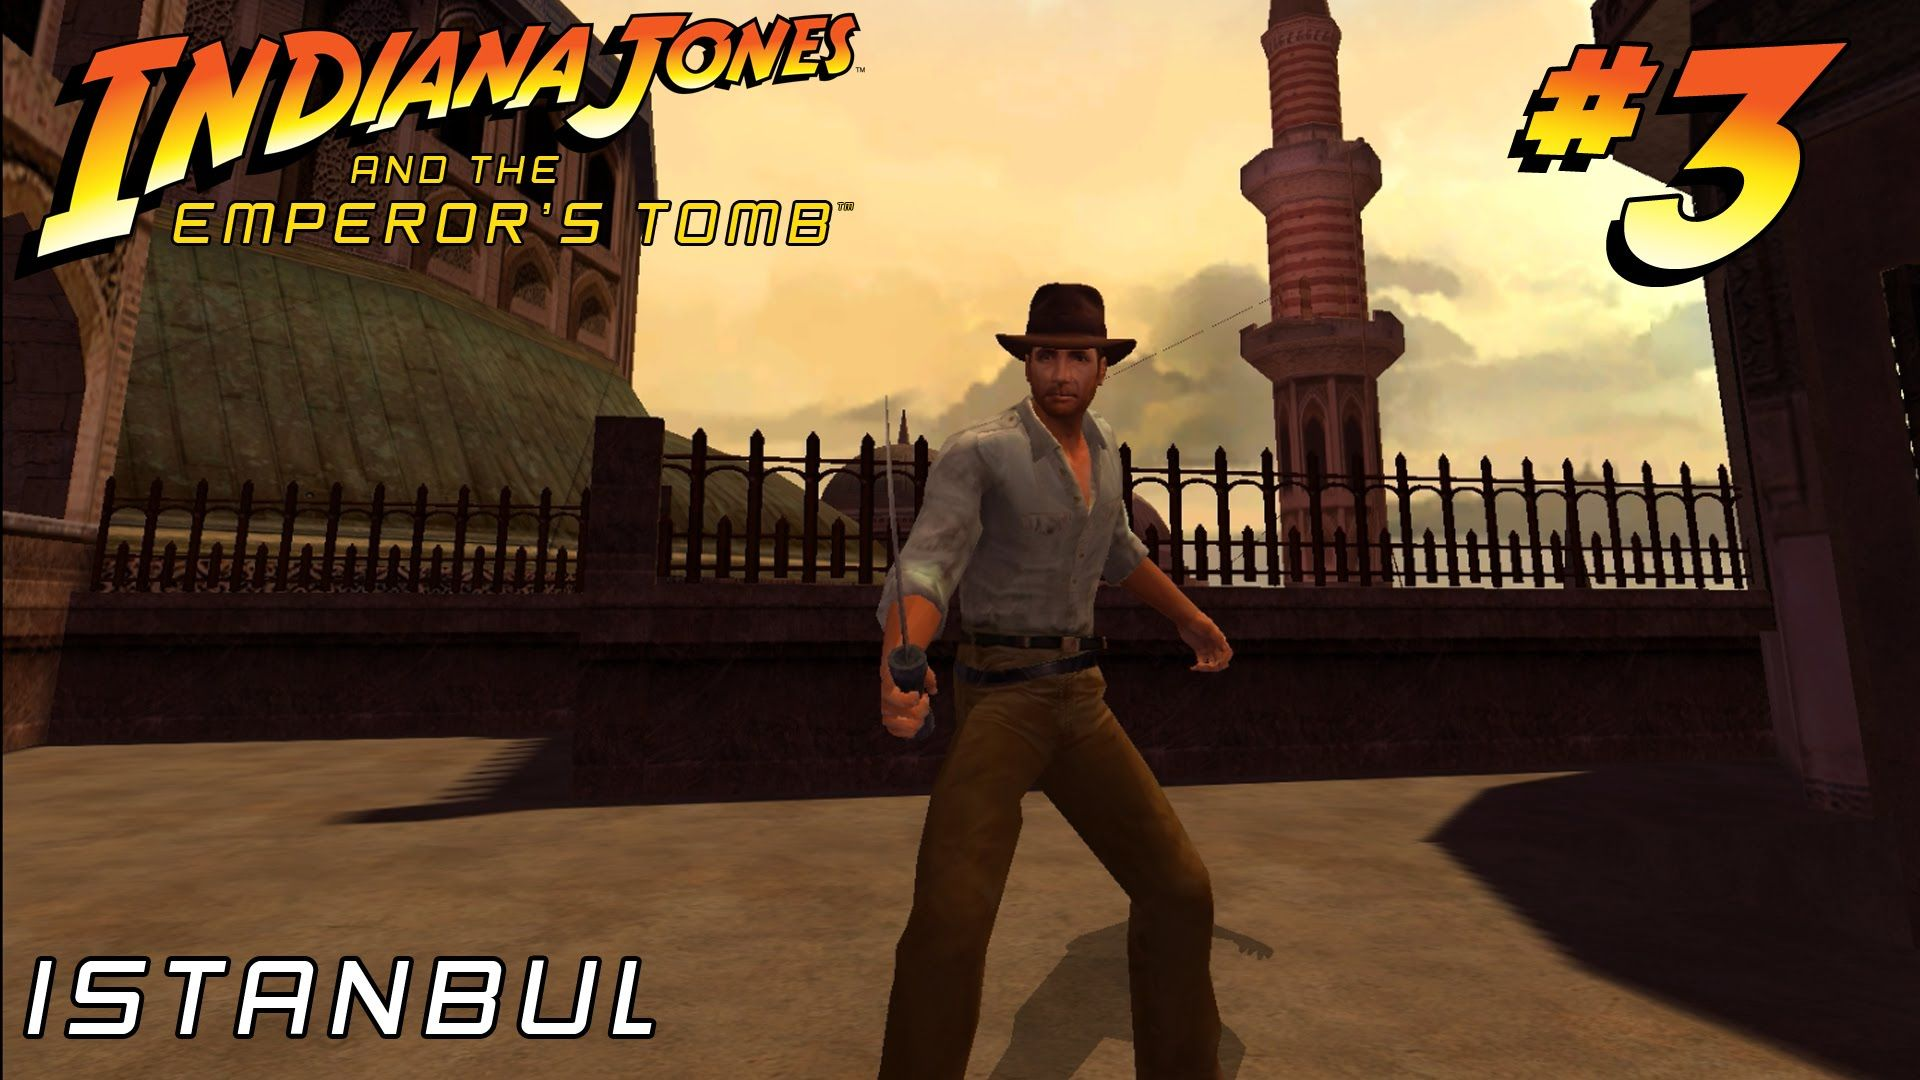 Indiana jones and the emperors tomb hard chapter 3 istanbul indiana jones and the emperors tomb hard chapter 3 istanbul gameplay publicscrutiny Image collections